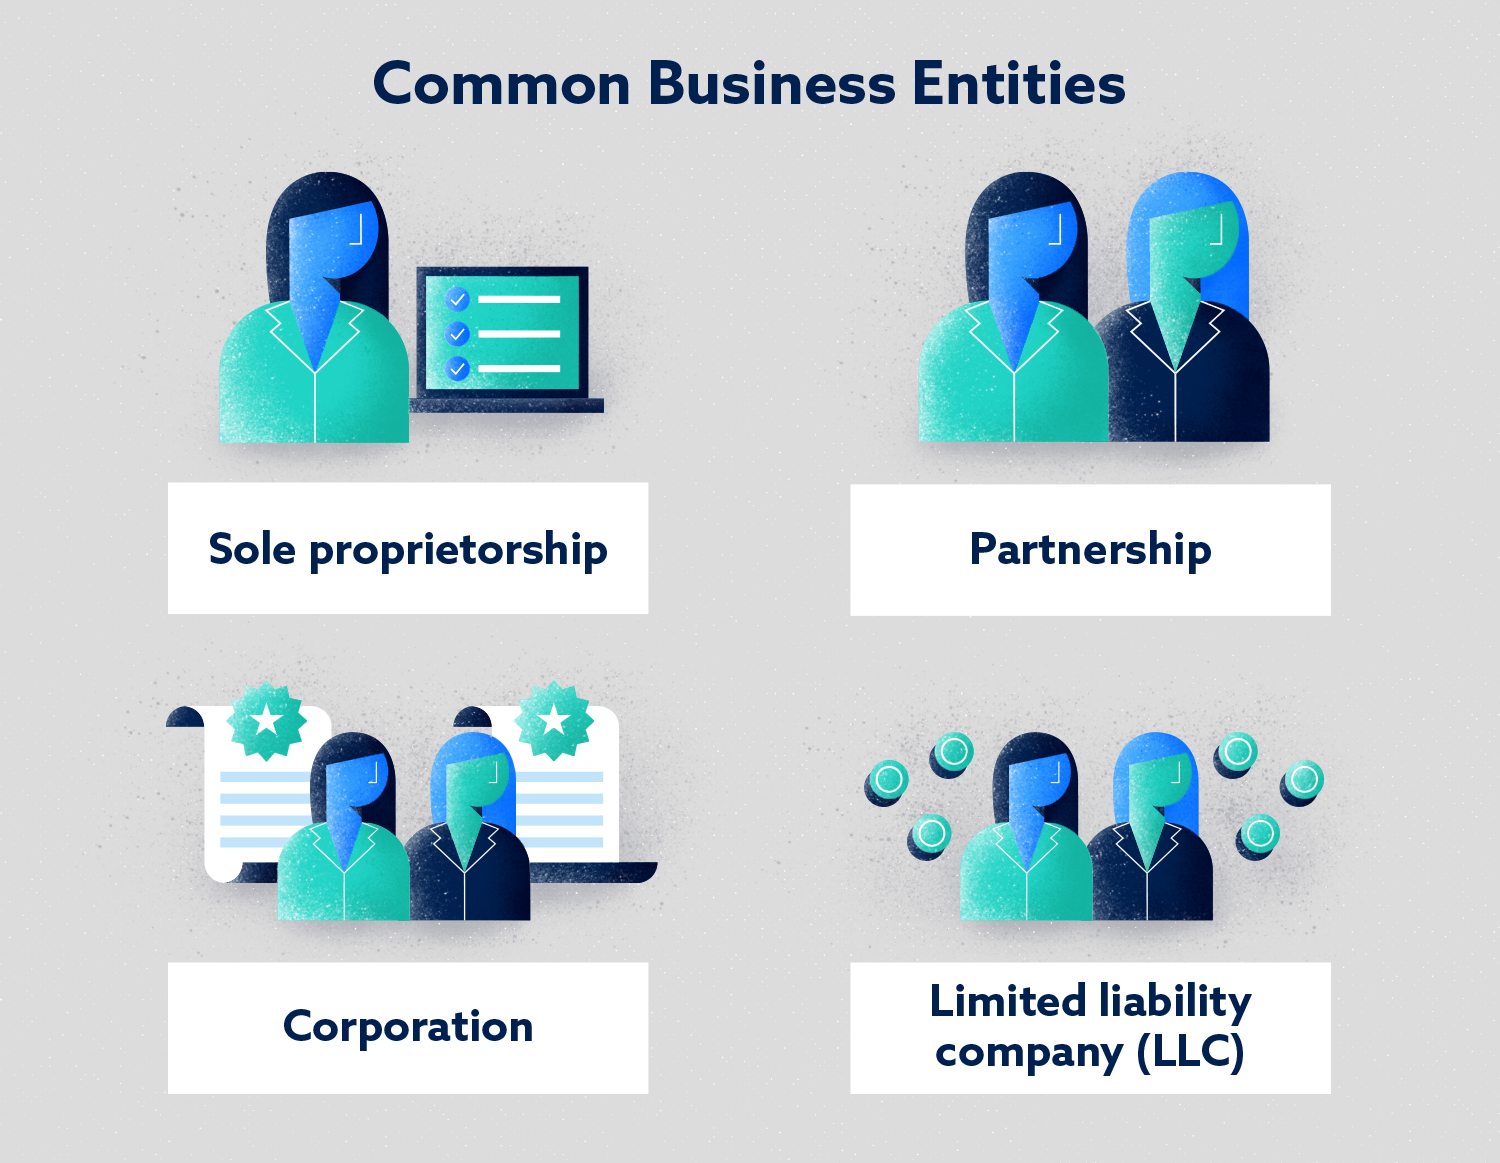 Common Business Entities Image